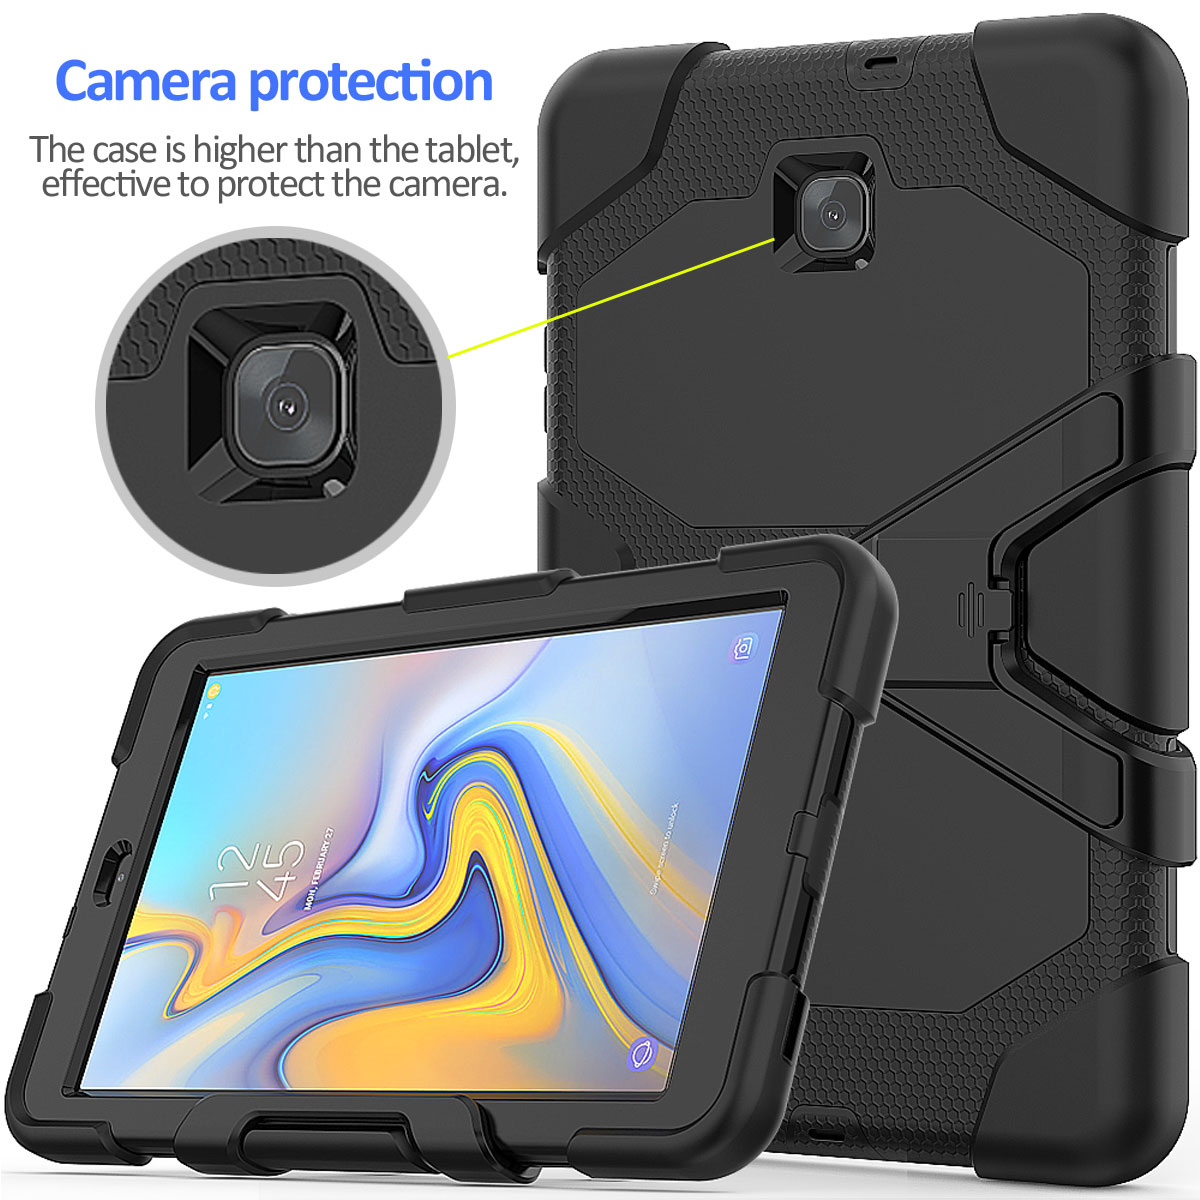 Rugged-Hard-Case-For-Samsung-Galaxy-Tab-A-8-0-2018-SM-T387-with-Screen-Protector thumbnail 58